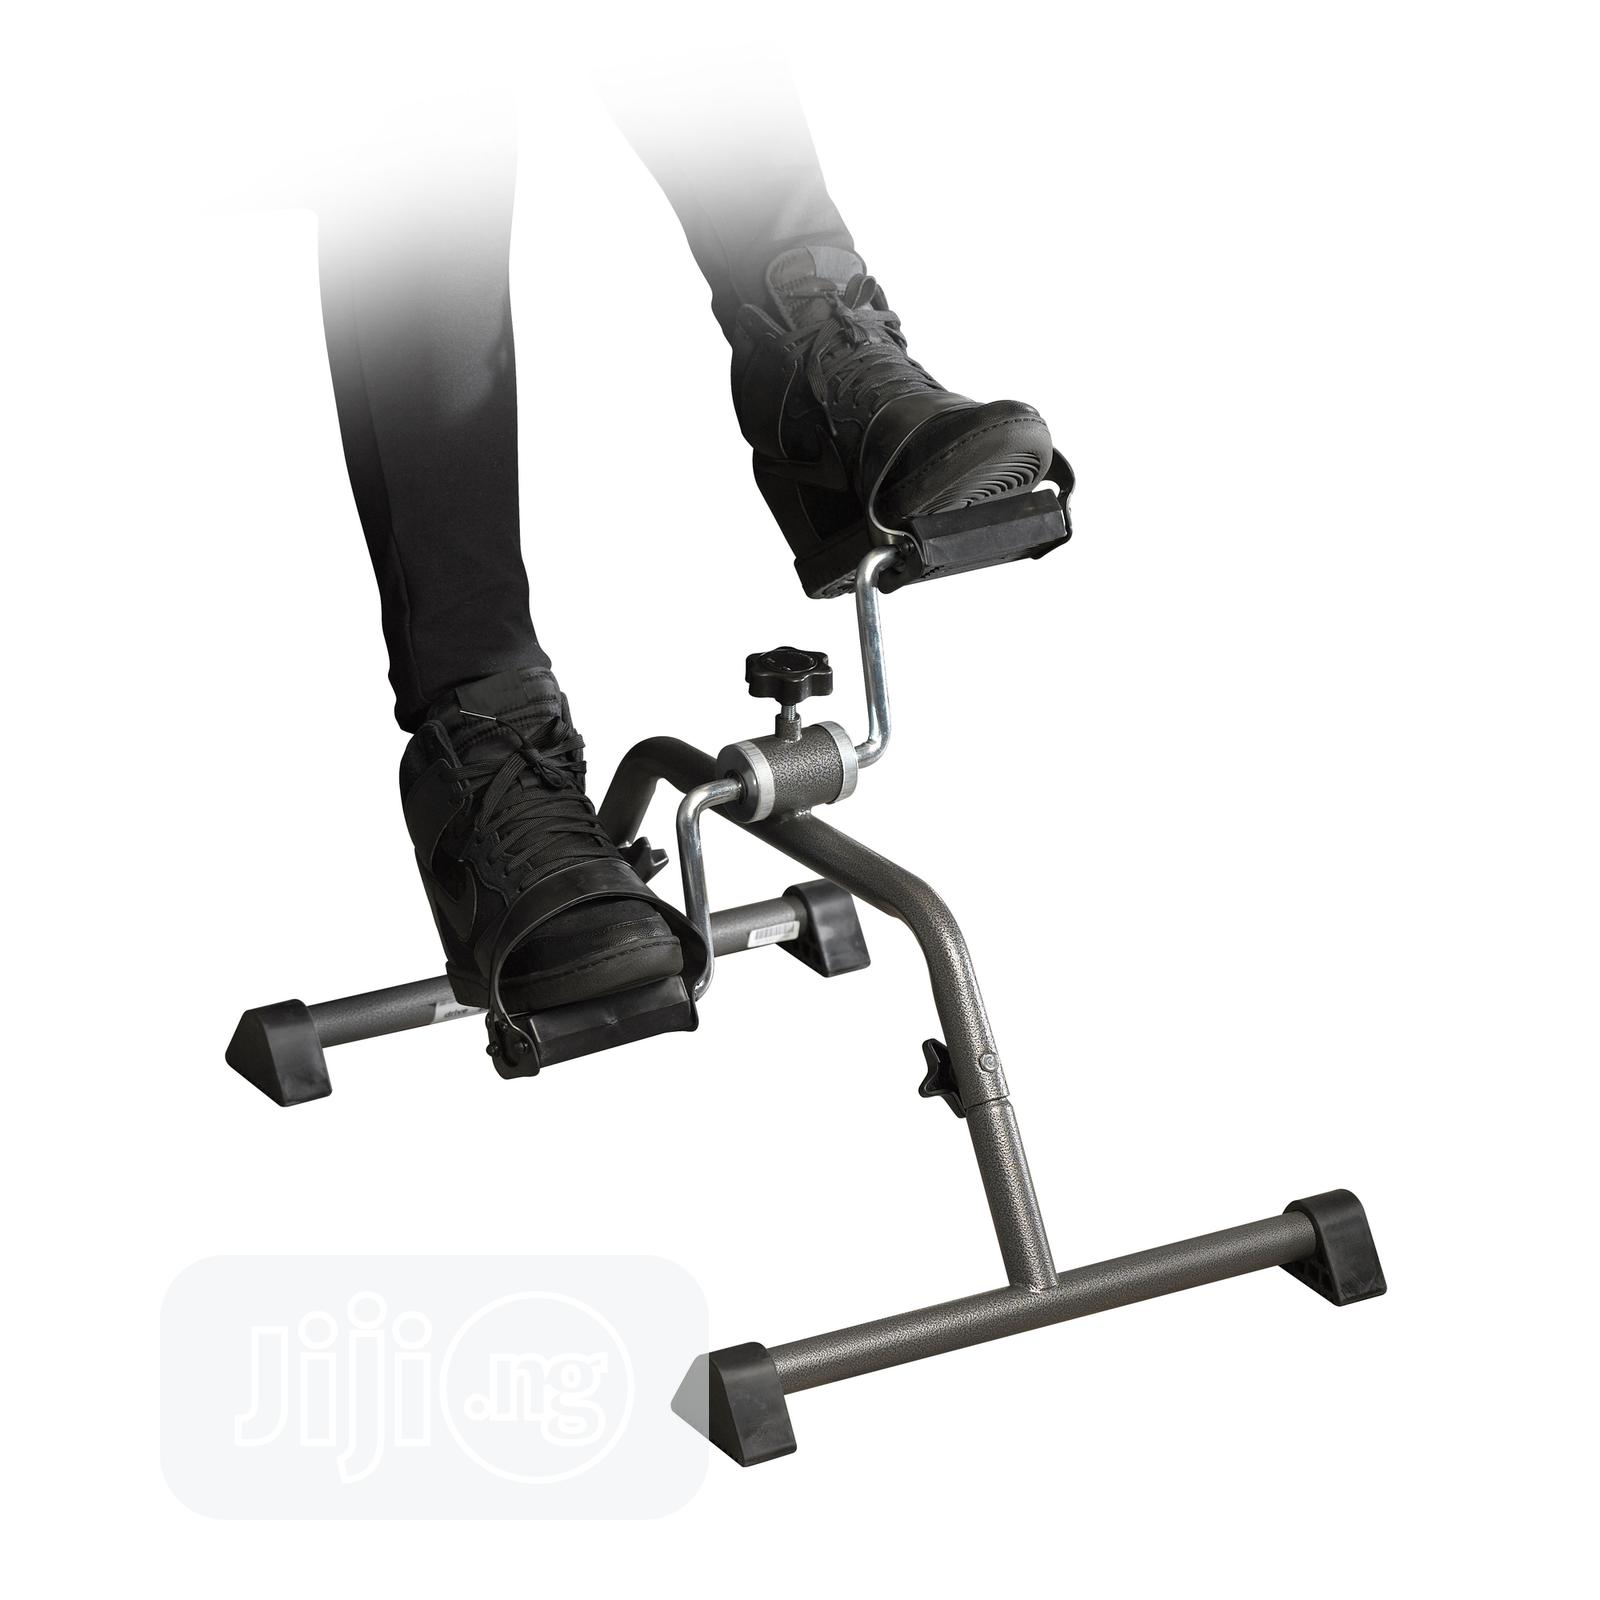 Compact Exercise Equipment For Arms And Legs | Sports Equipment for sale in Ifako-Ijaiye, Lagos State, Nigeria